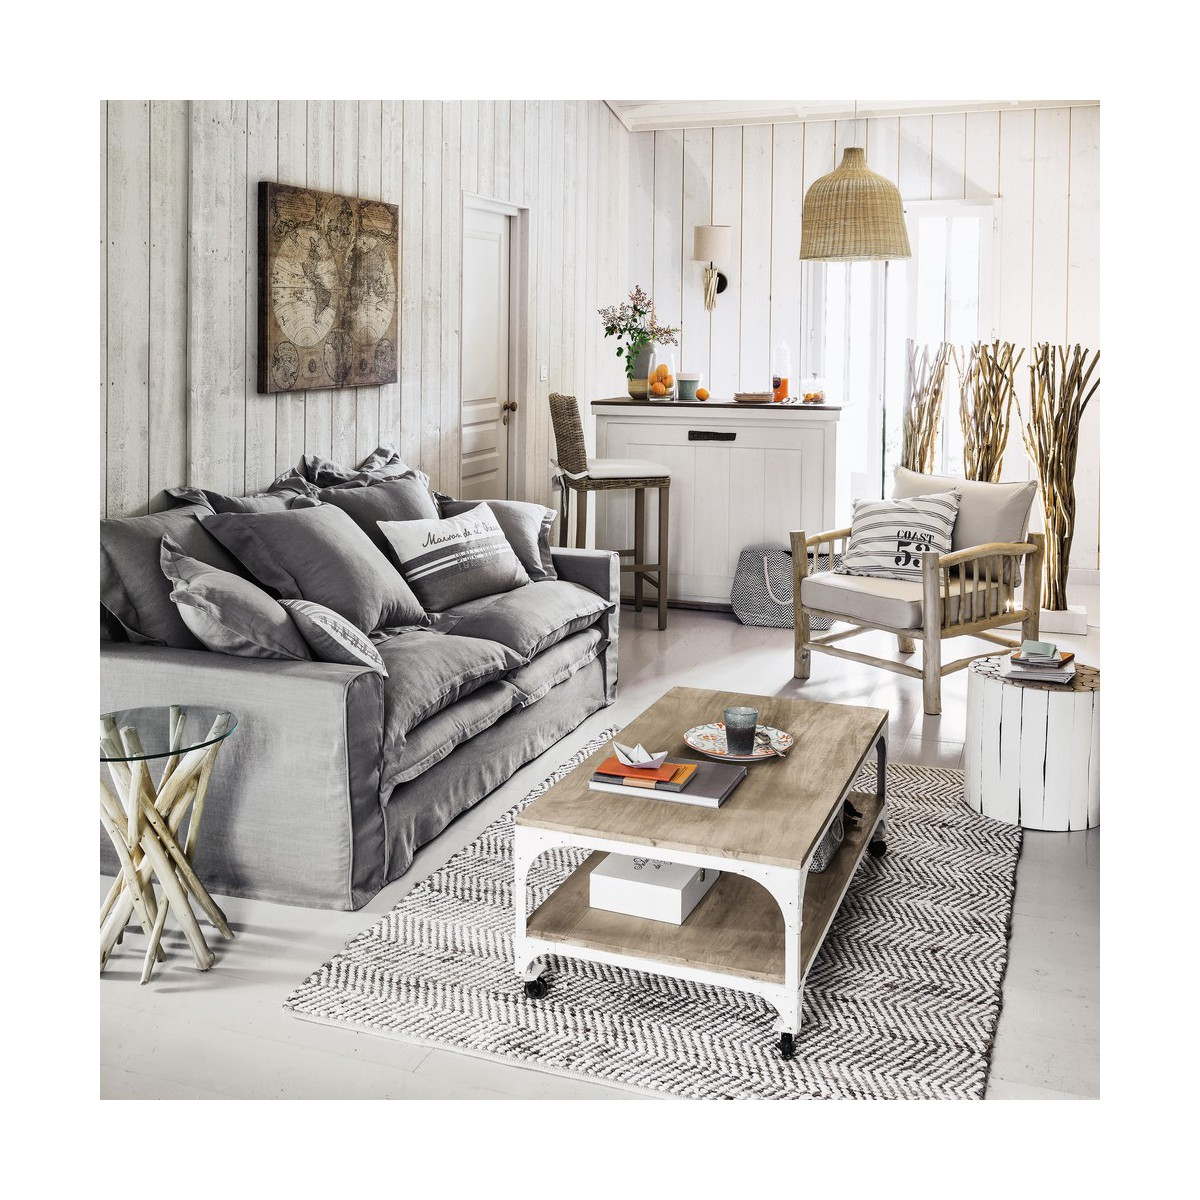 meuble bois gris vieilli latest lovely peinture effet vieilli blanc with meuble bois gris. Black Bedroom Furniture Sets. Home Design Ideas